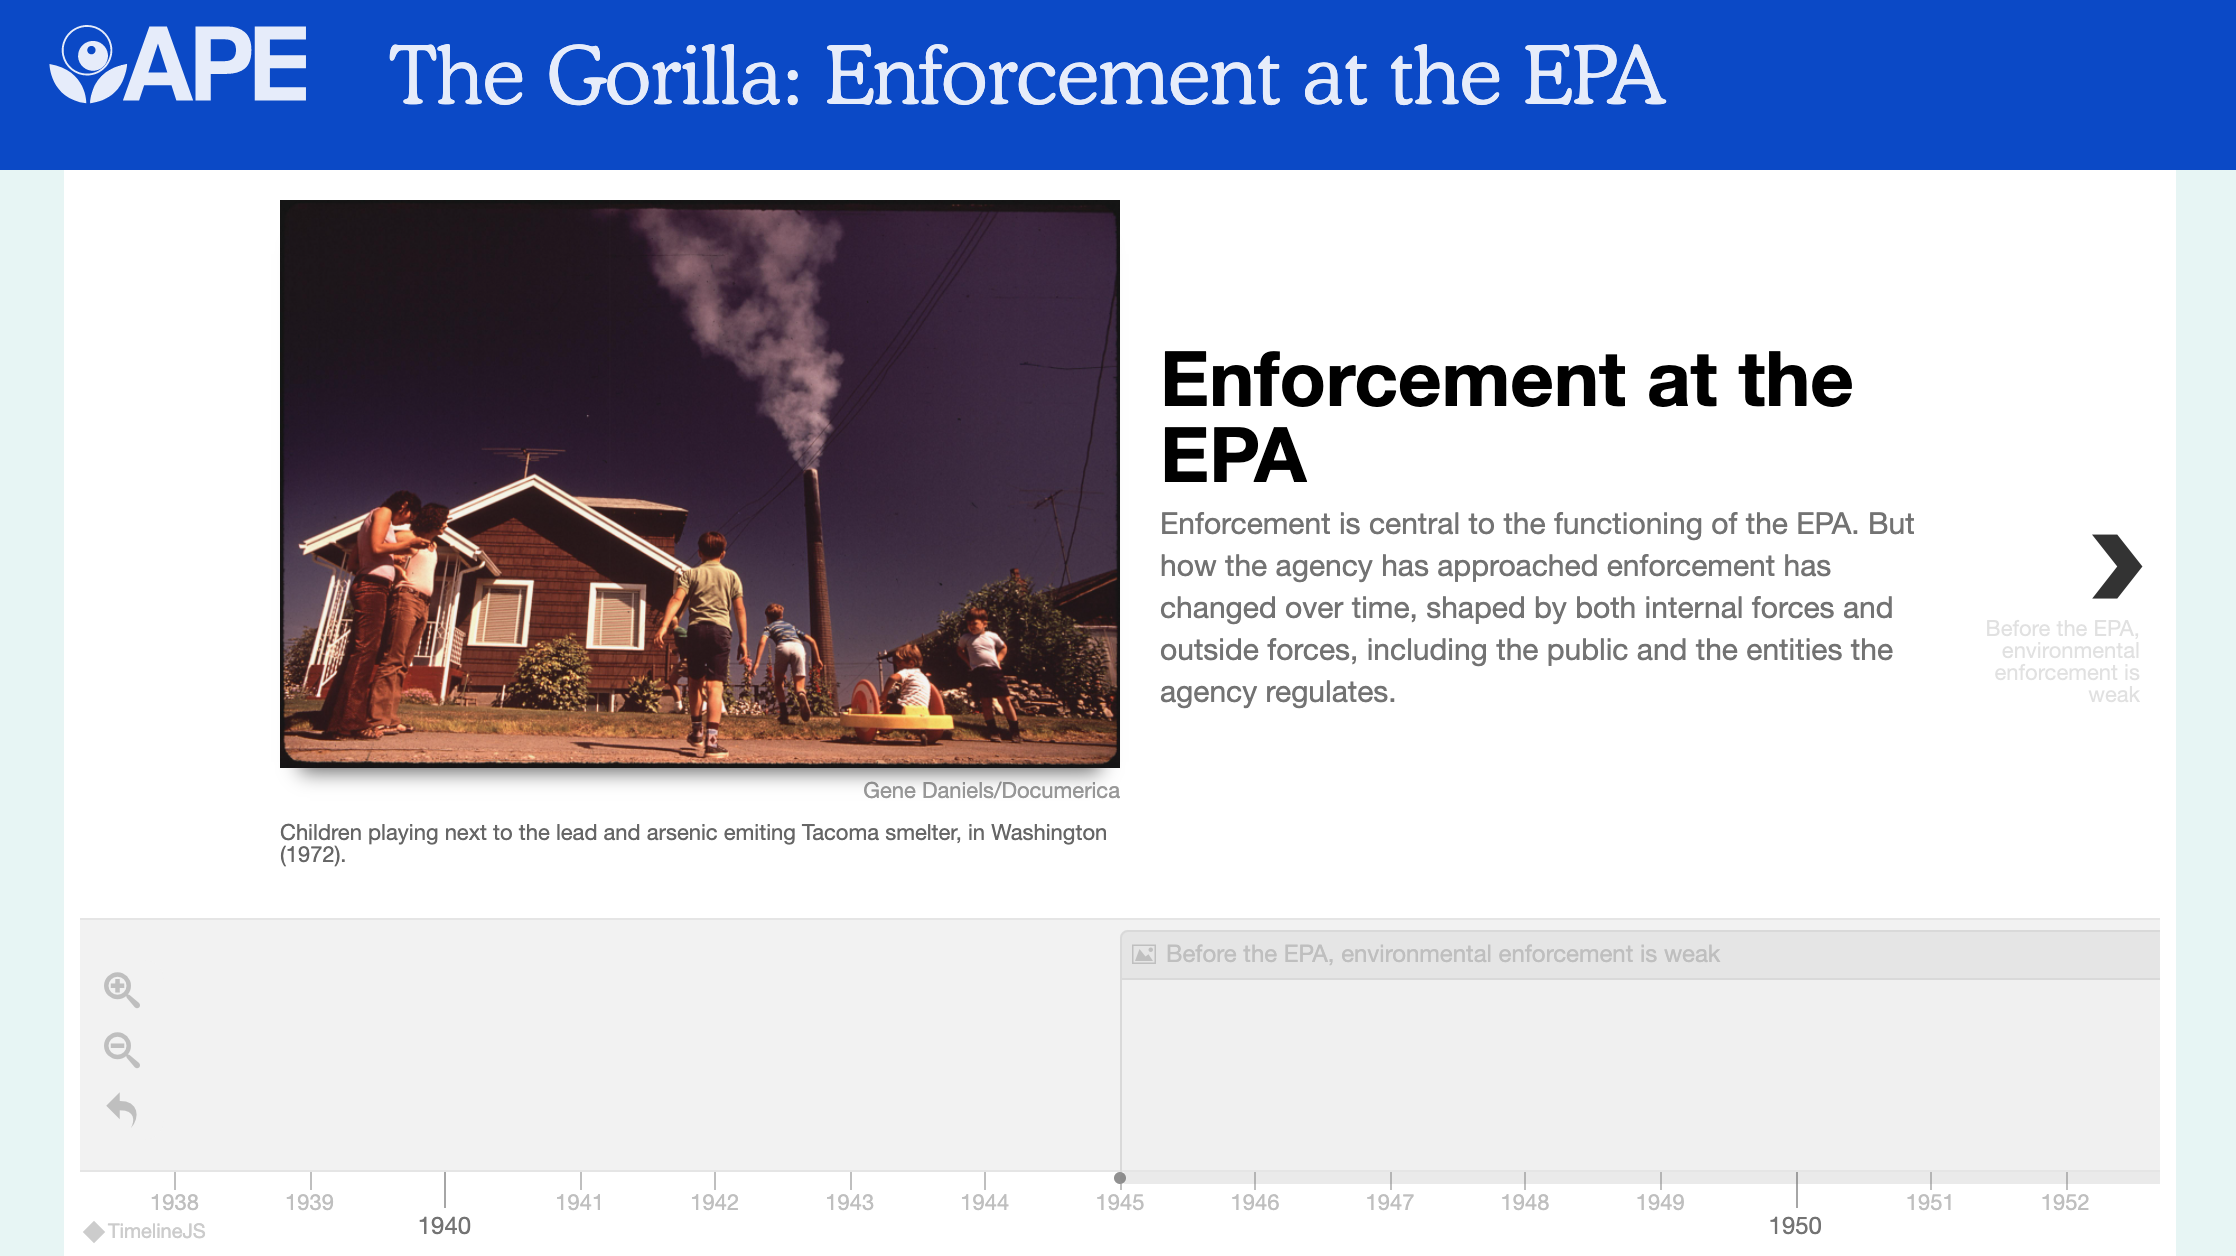 A New Chapter for Enforcement at the EPA?